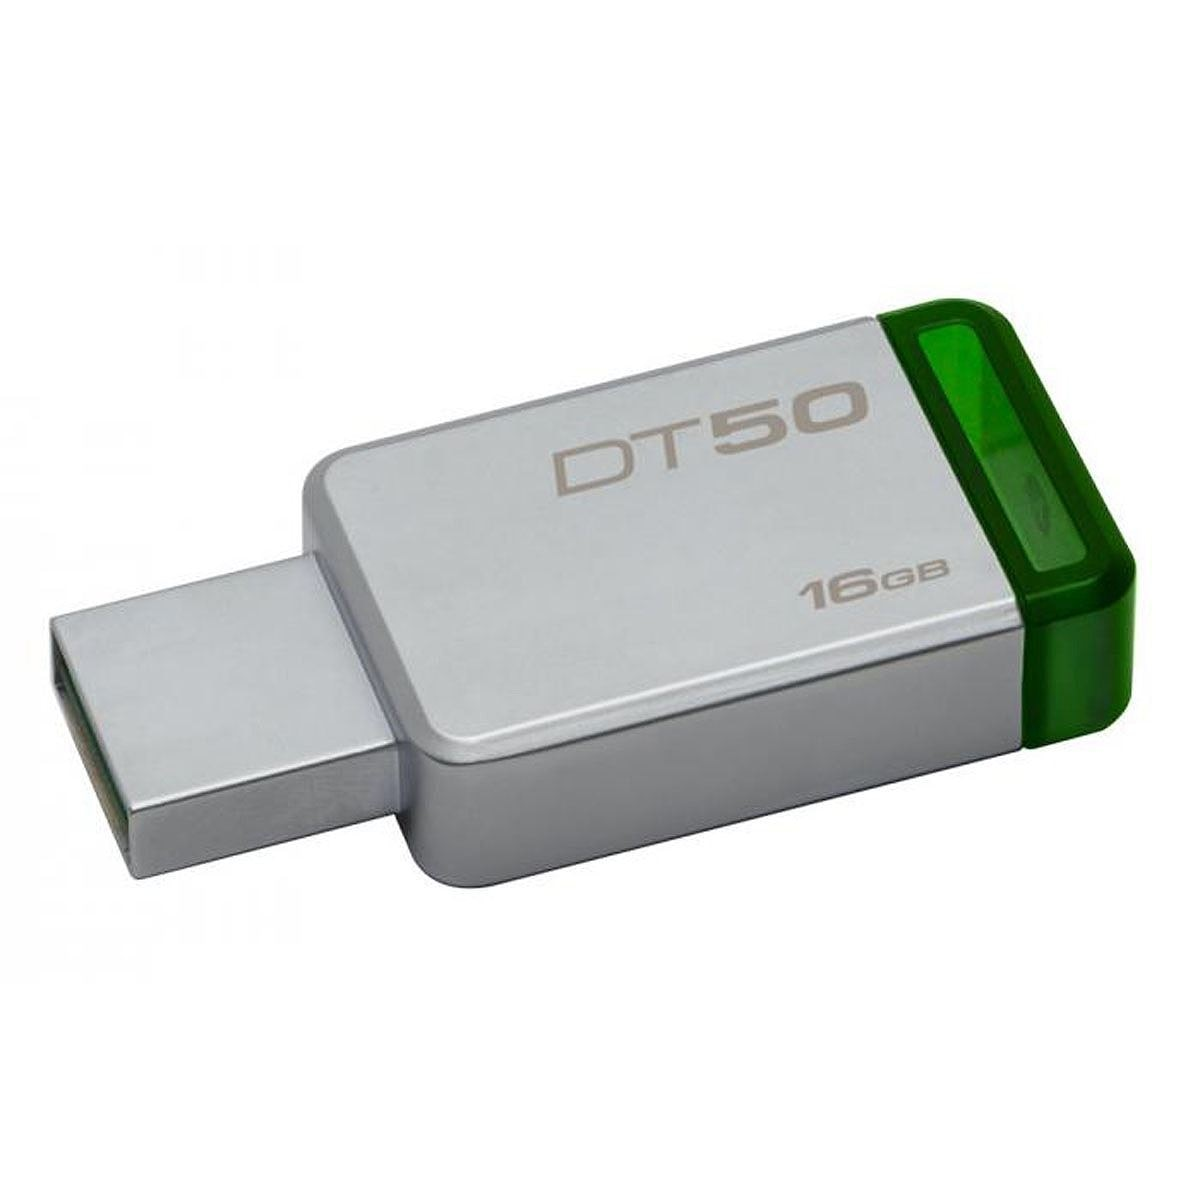 Kingston memoria usb 3.0 16gb dt50  - Sanborns